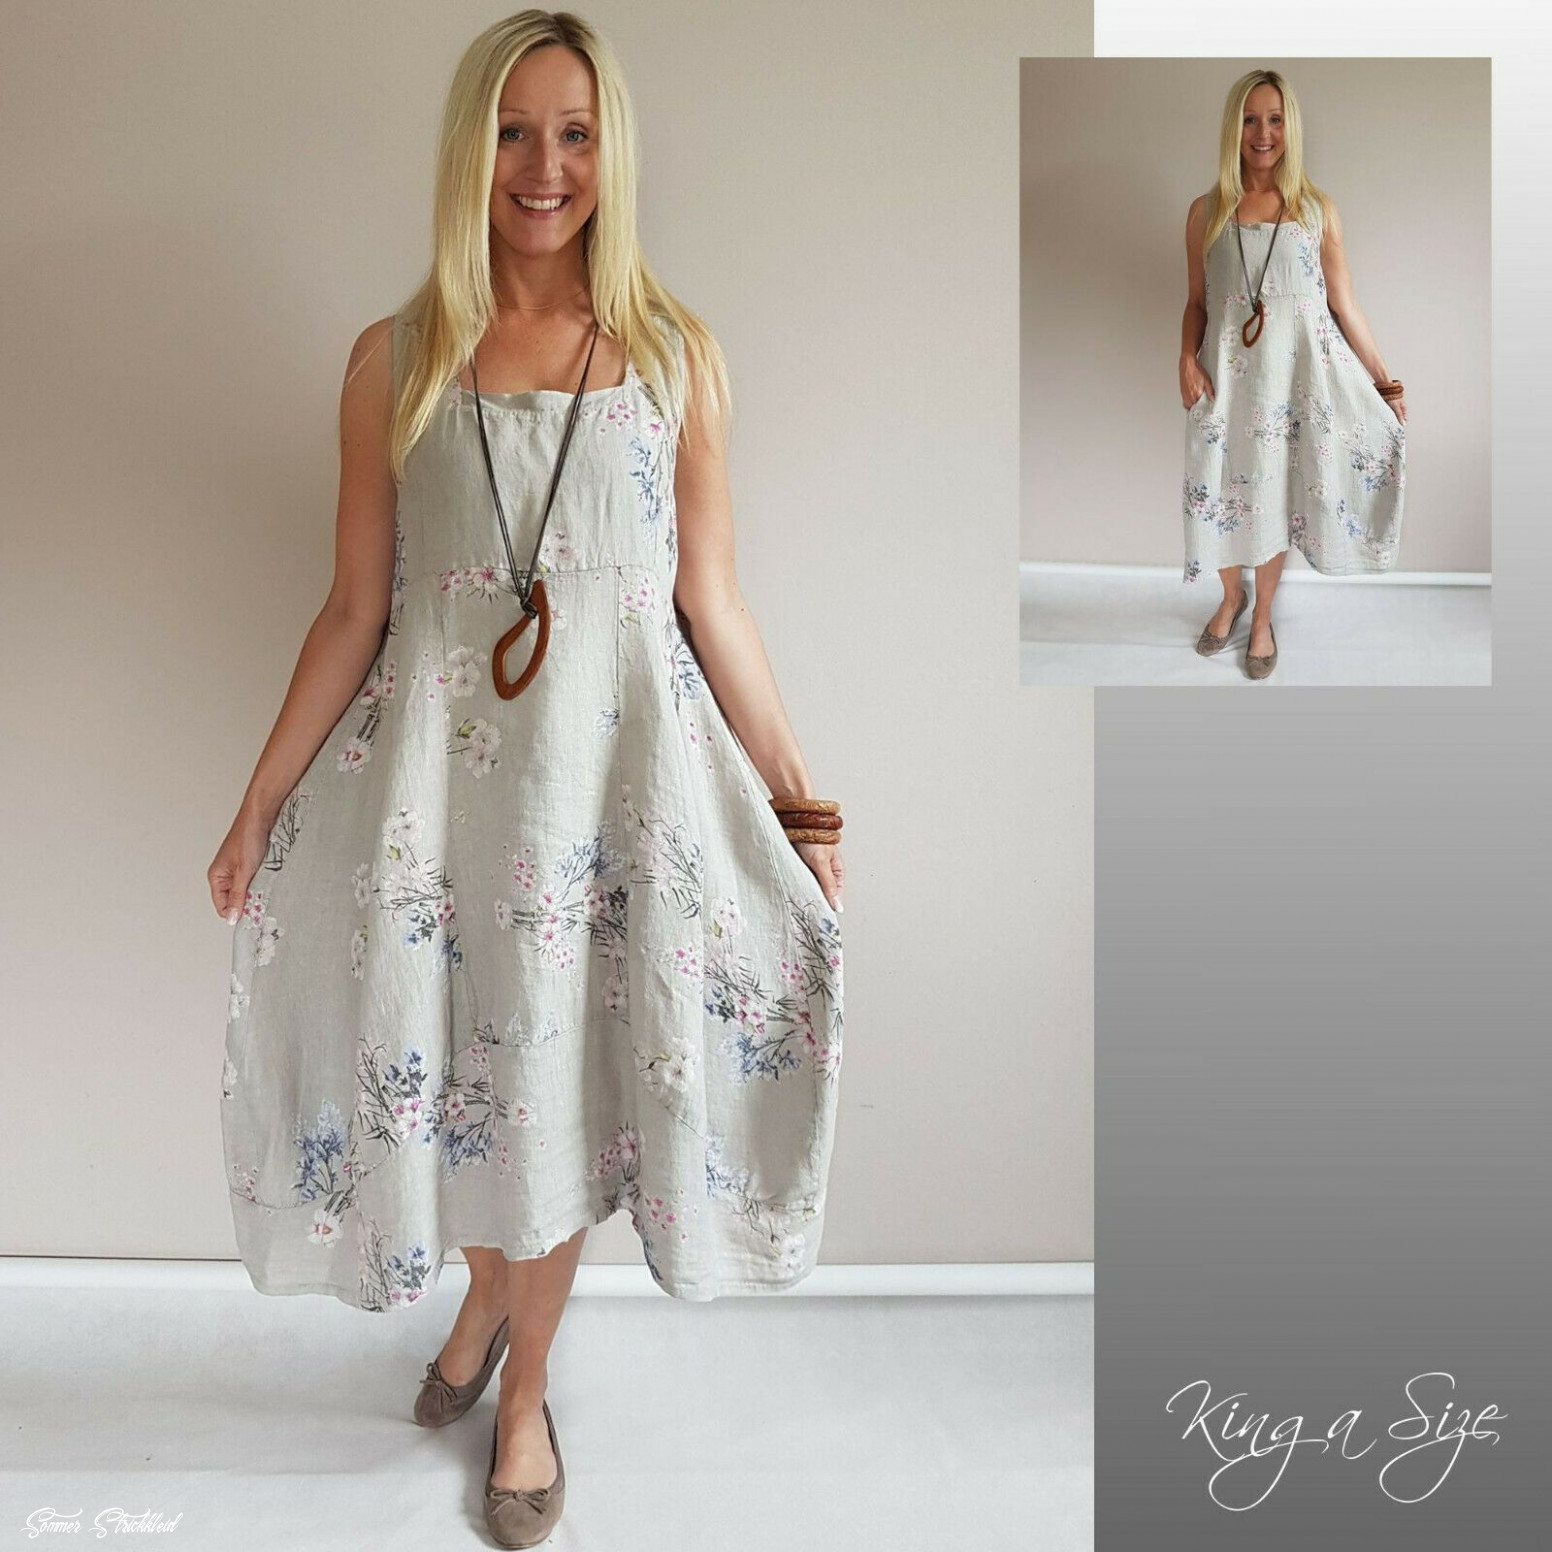 sommer kleid lagenlook / casual dress lose outfits leinen gr